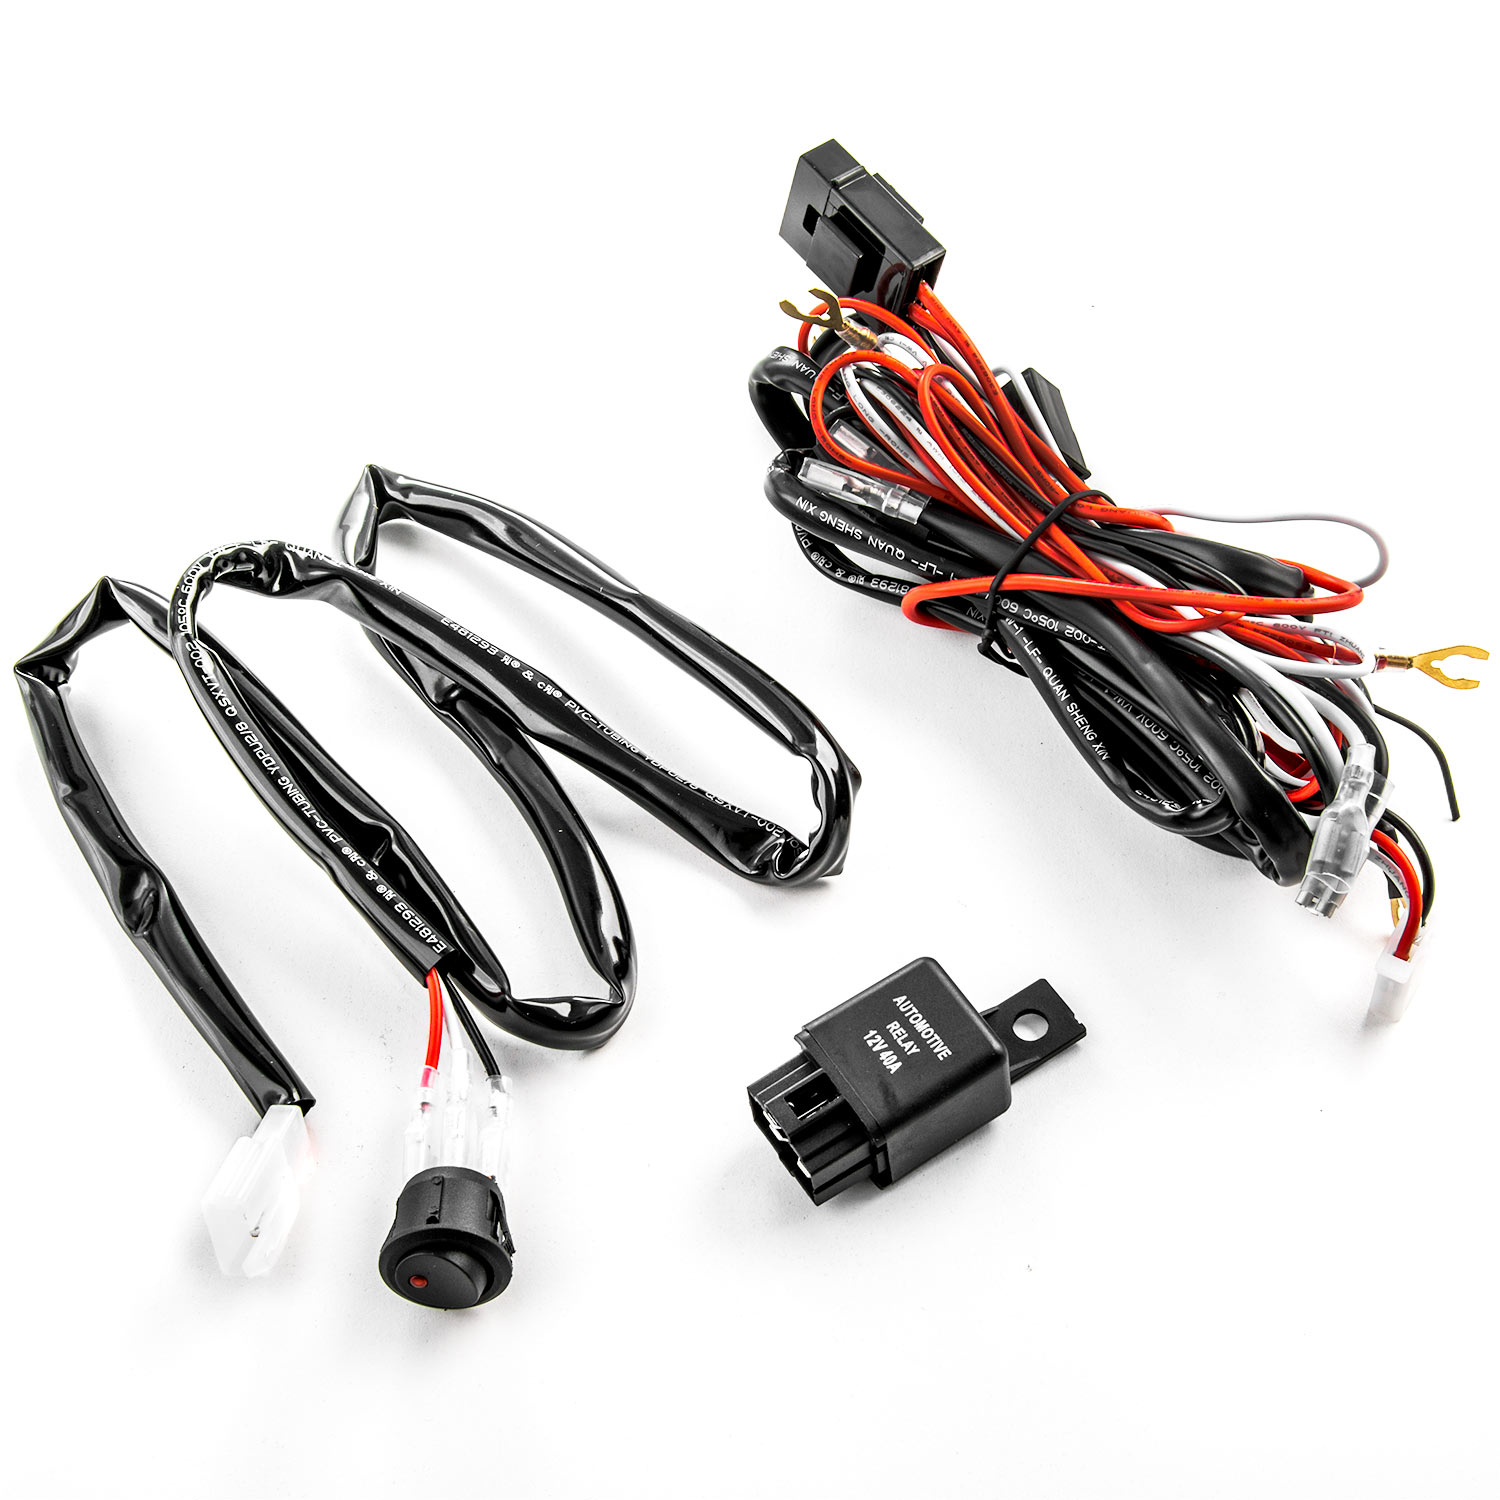 Wiring Kit Fog Light Driving Lamps Harness Fuse Switch Relay Headlight Hid Xenon Conversion Wire Ebay Universal Led Lamp Rh Com